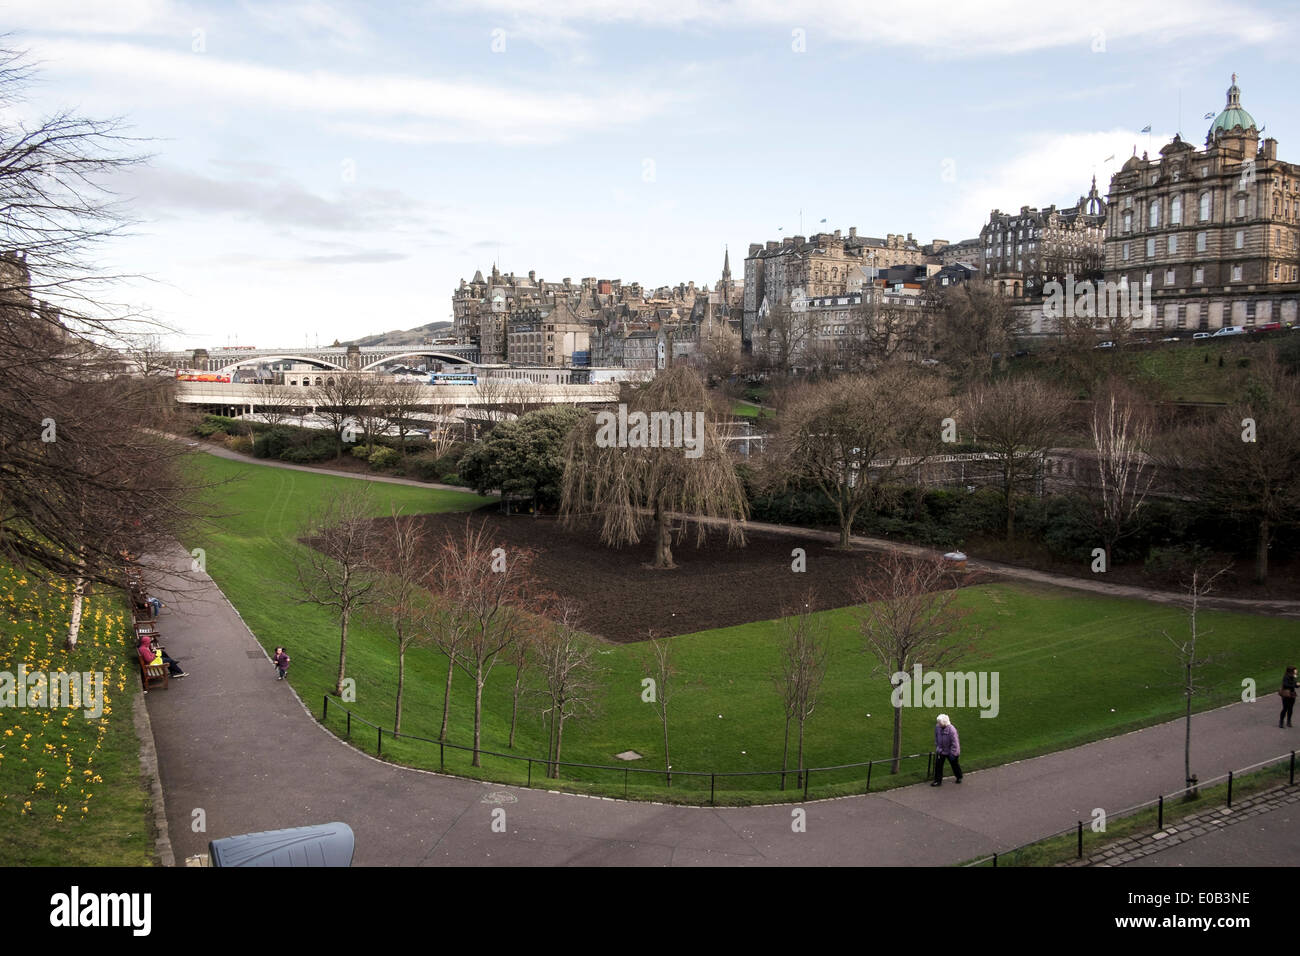 Princes Street Gardens Edinburgh - Stock Image